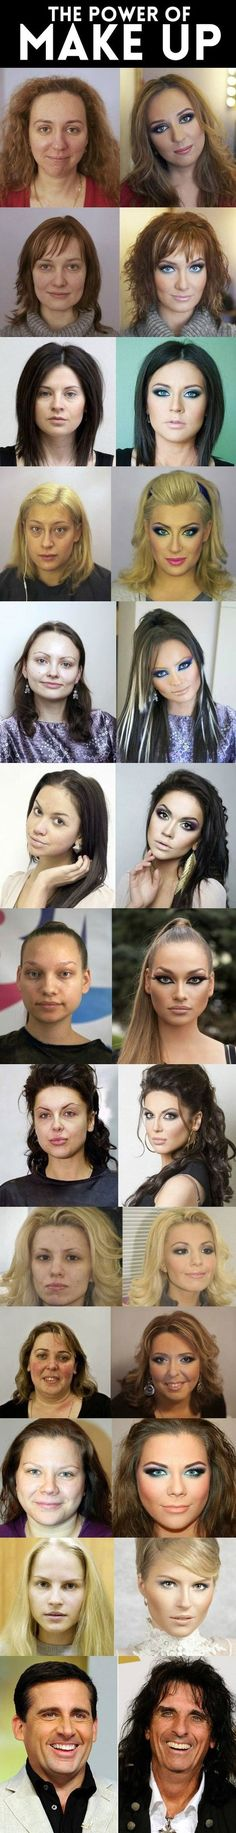 Power of makeup - www.meme-lol.com